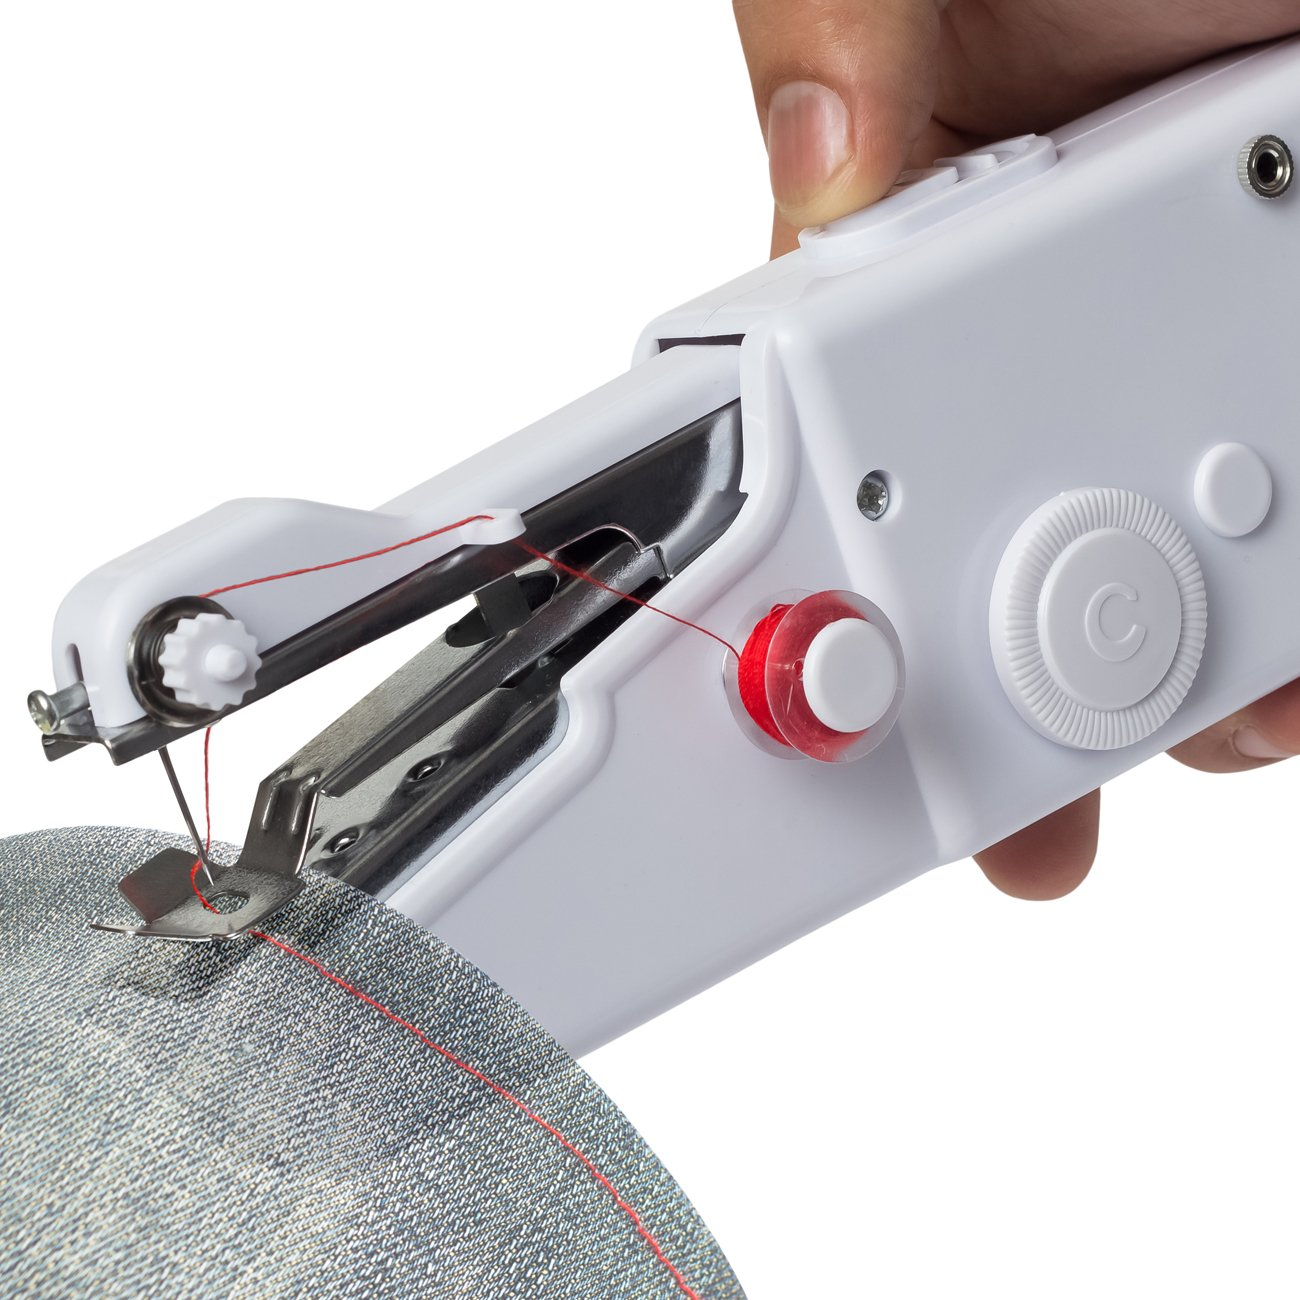 Sewing Machine Professional Handheld - Quick Stitch Tool for Fabric, Clothing, or Kids Cloth - Great for Traveling or use in Home - Includes Threads Needles Accessories - Cordless